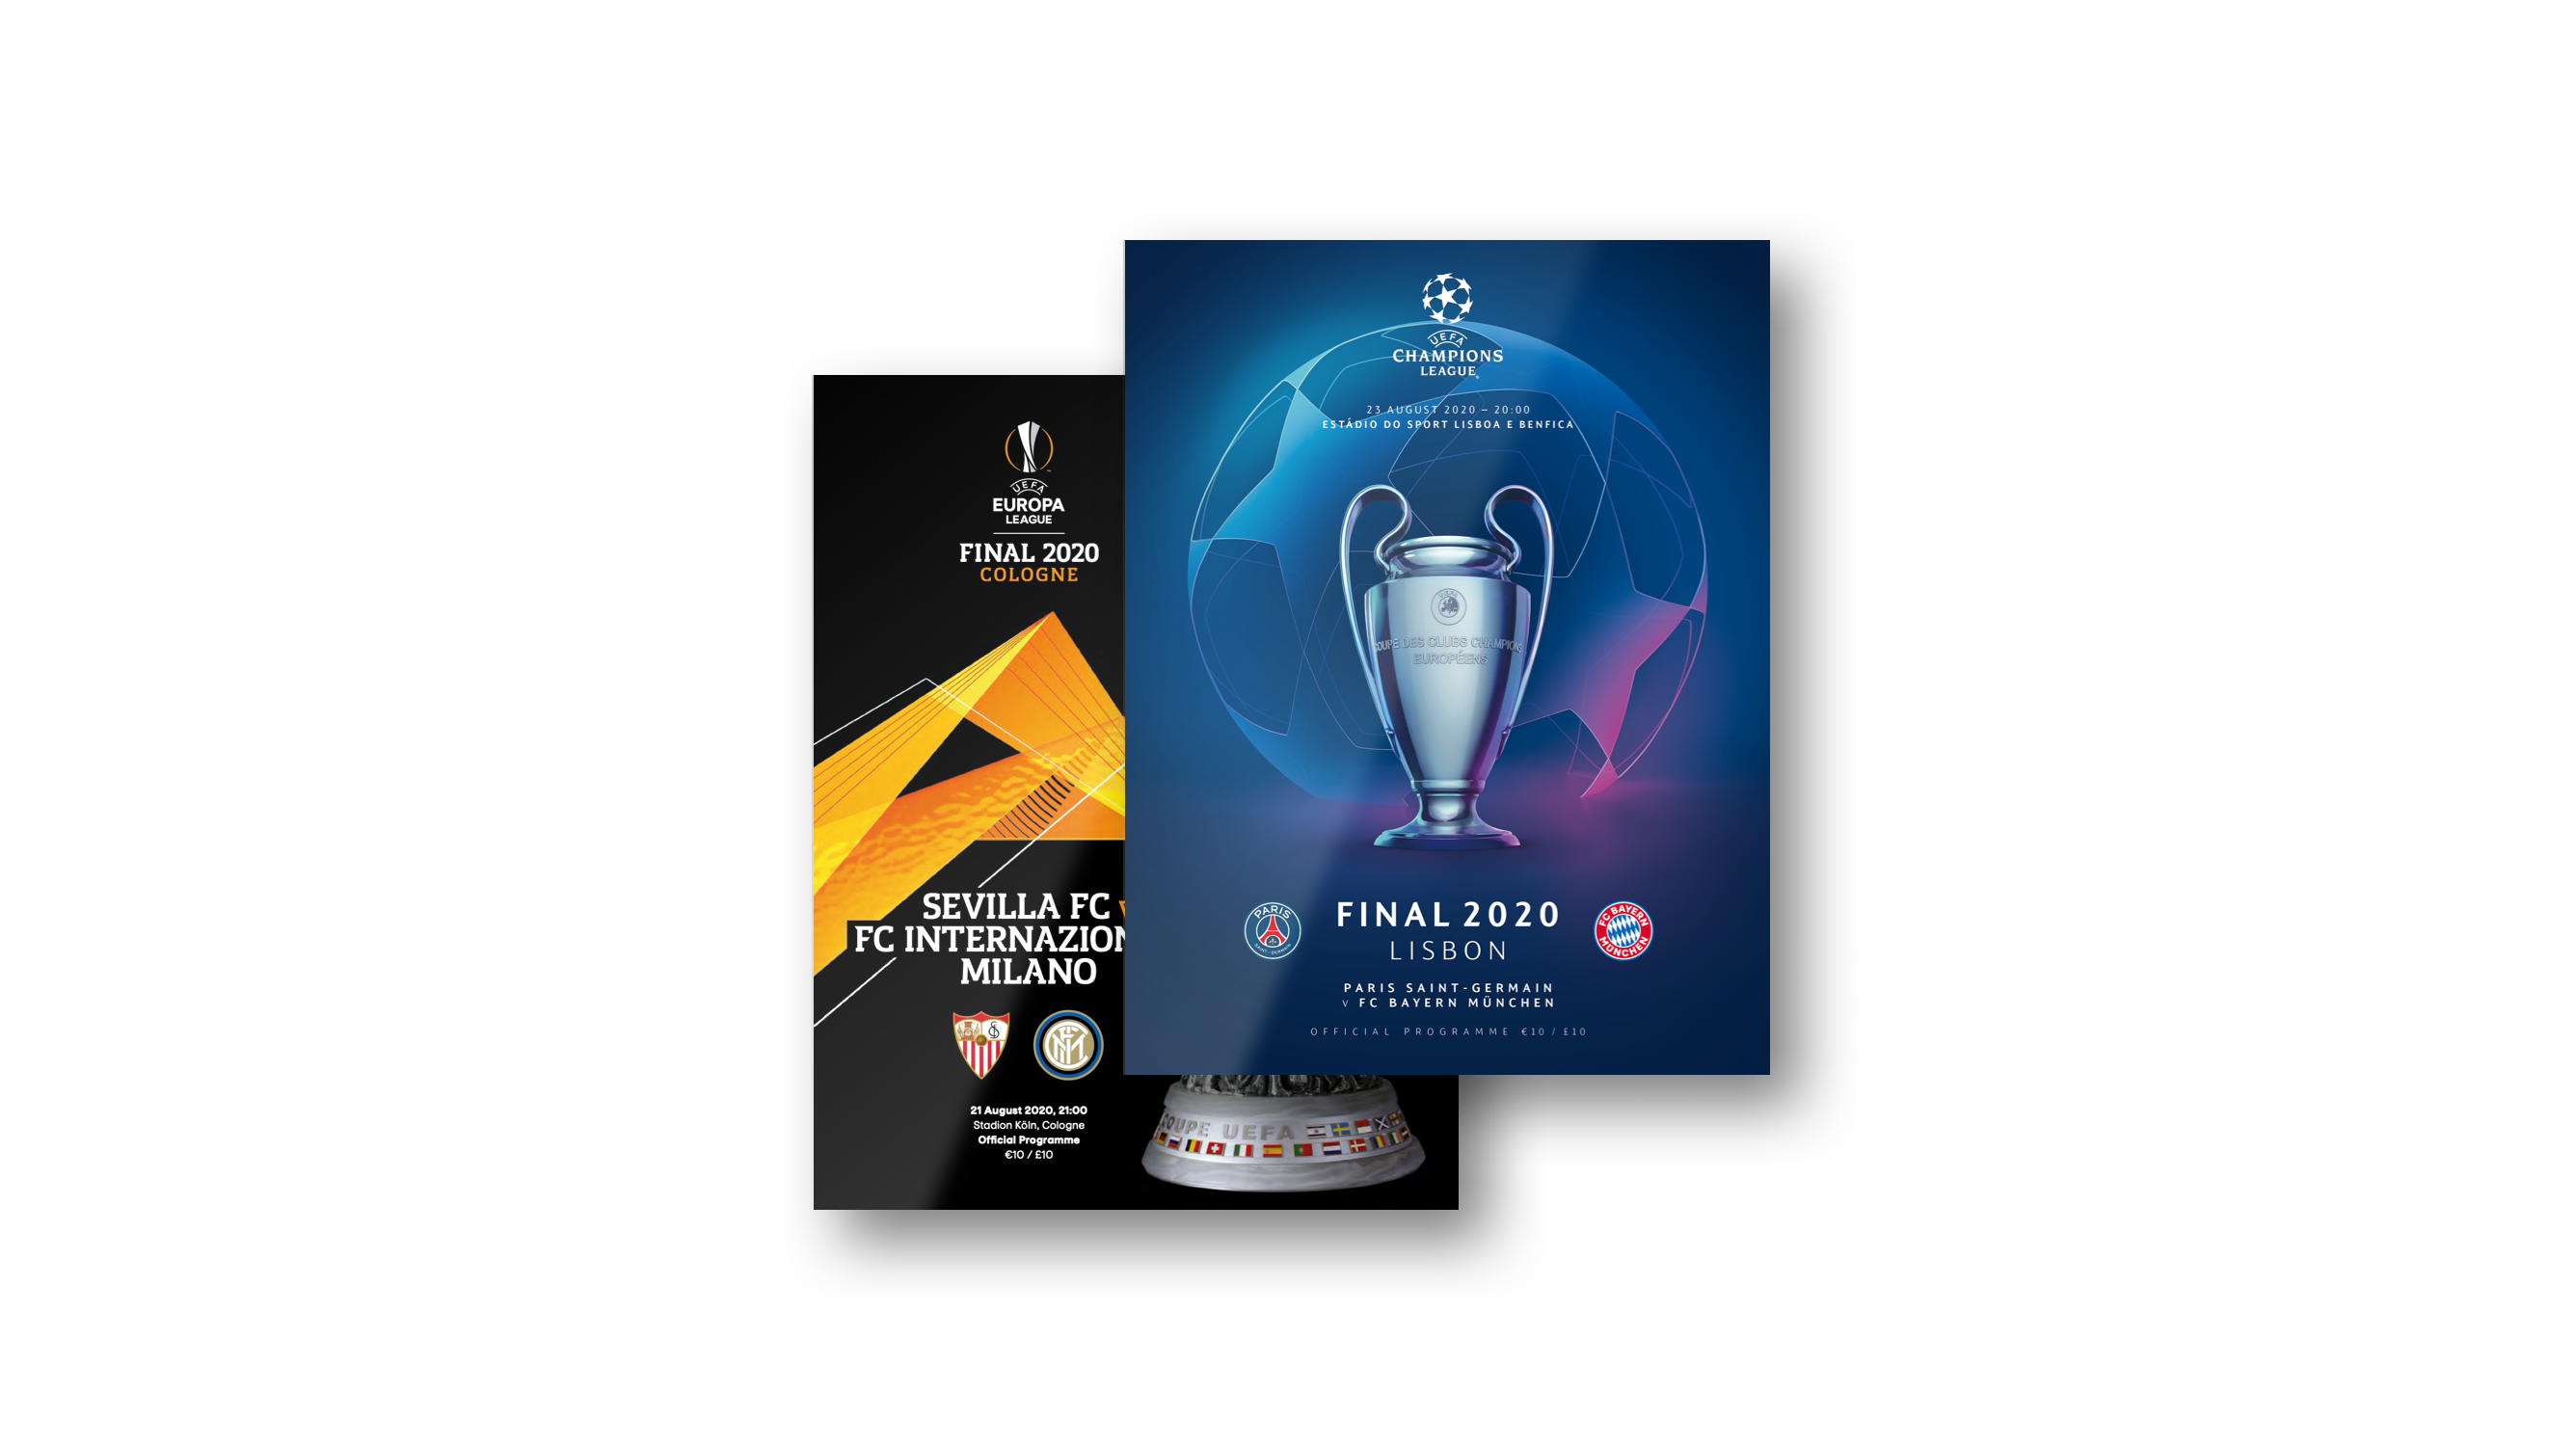 uefa champions league europa league final programmes 2020 european nights uefa champions league europa league